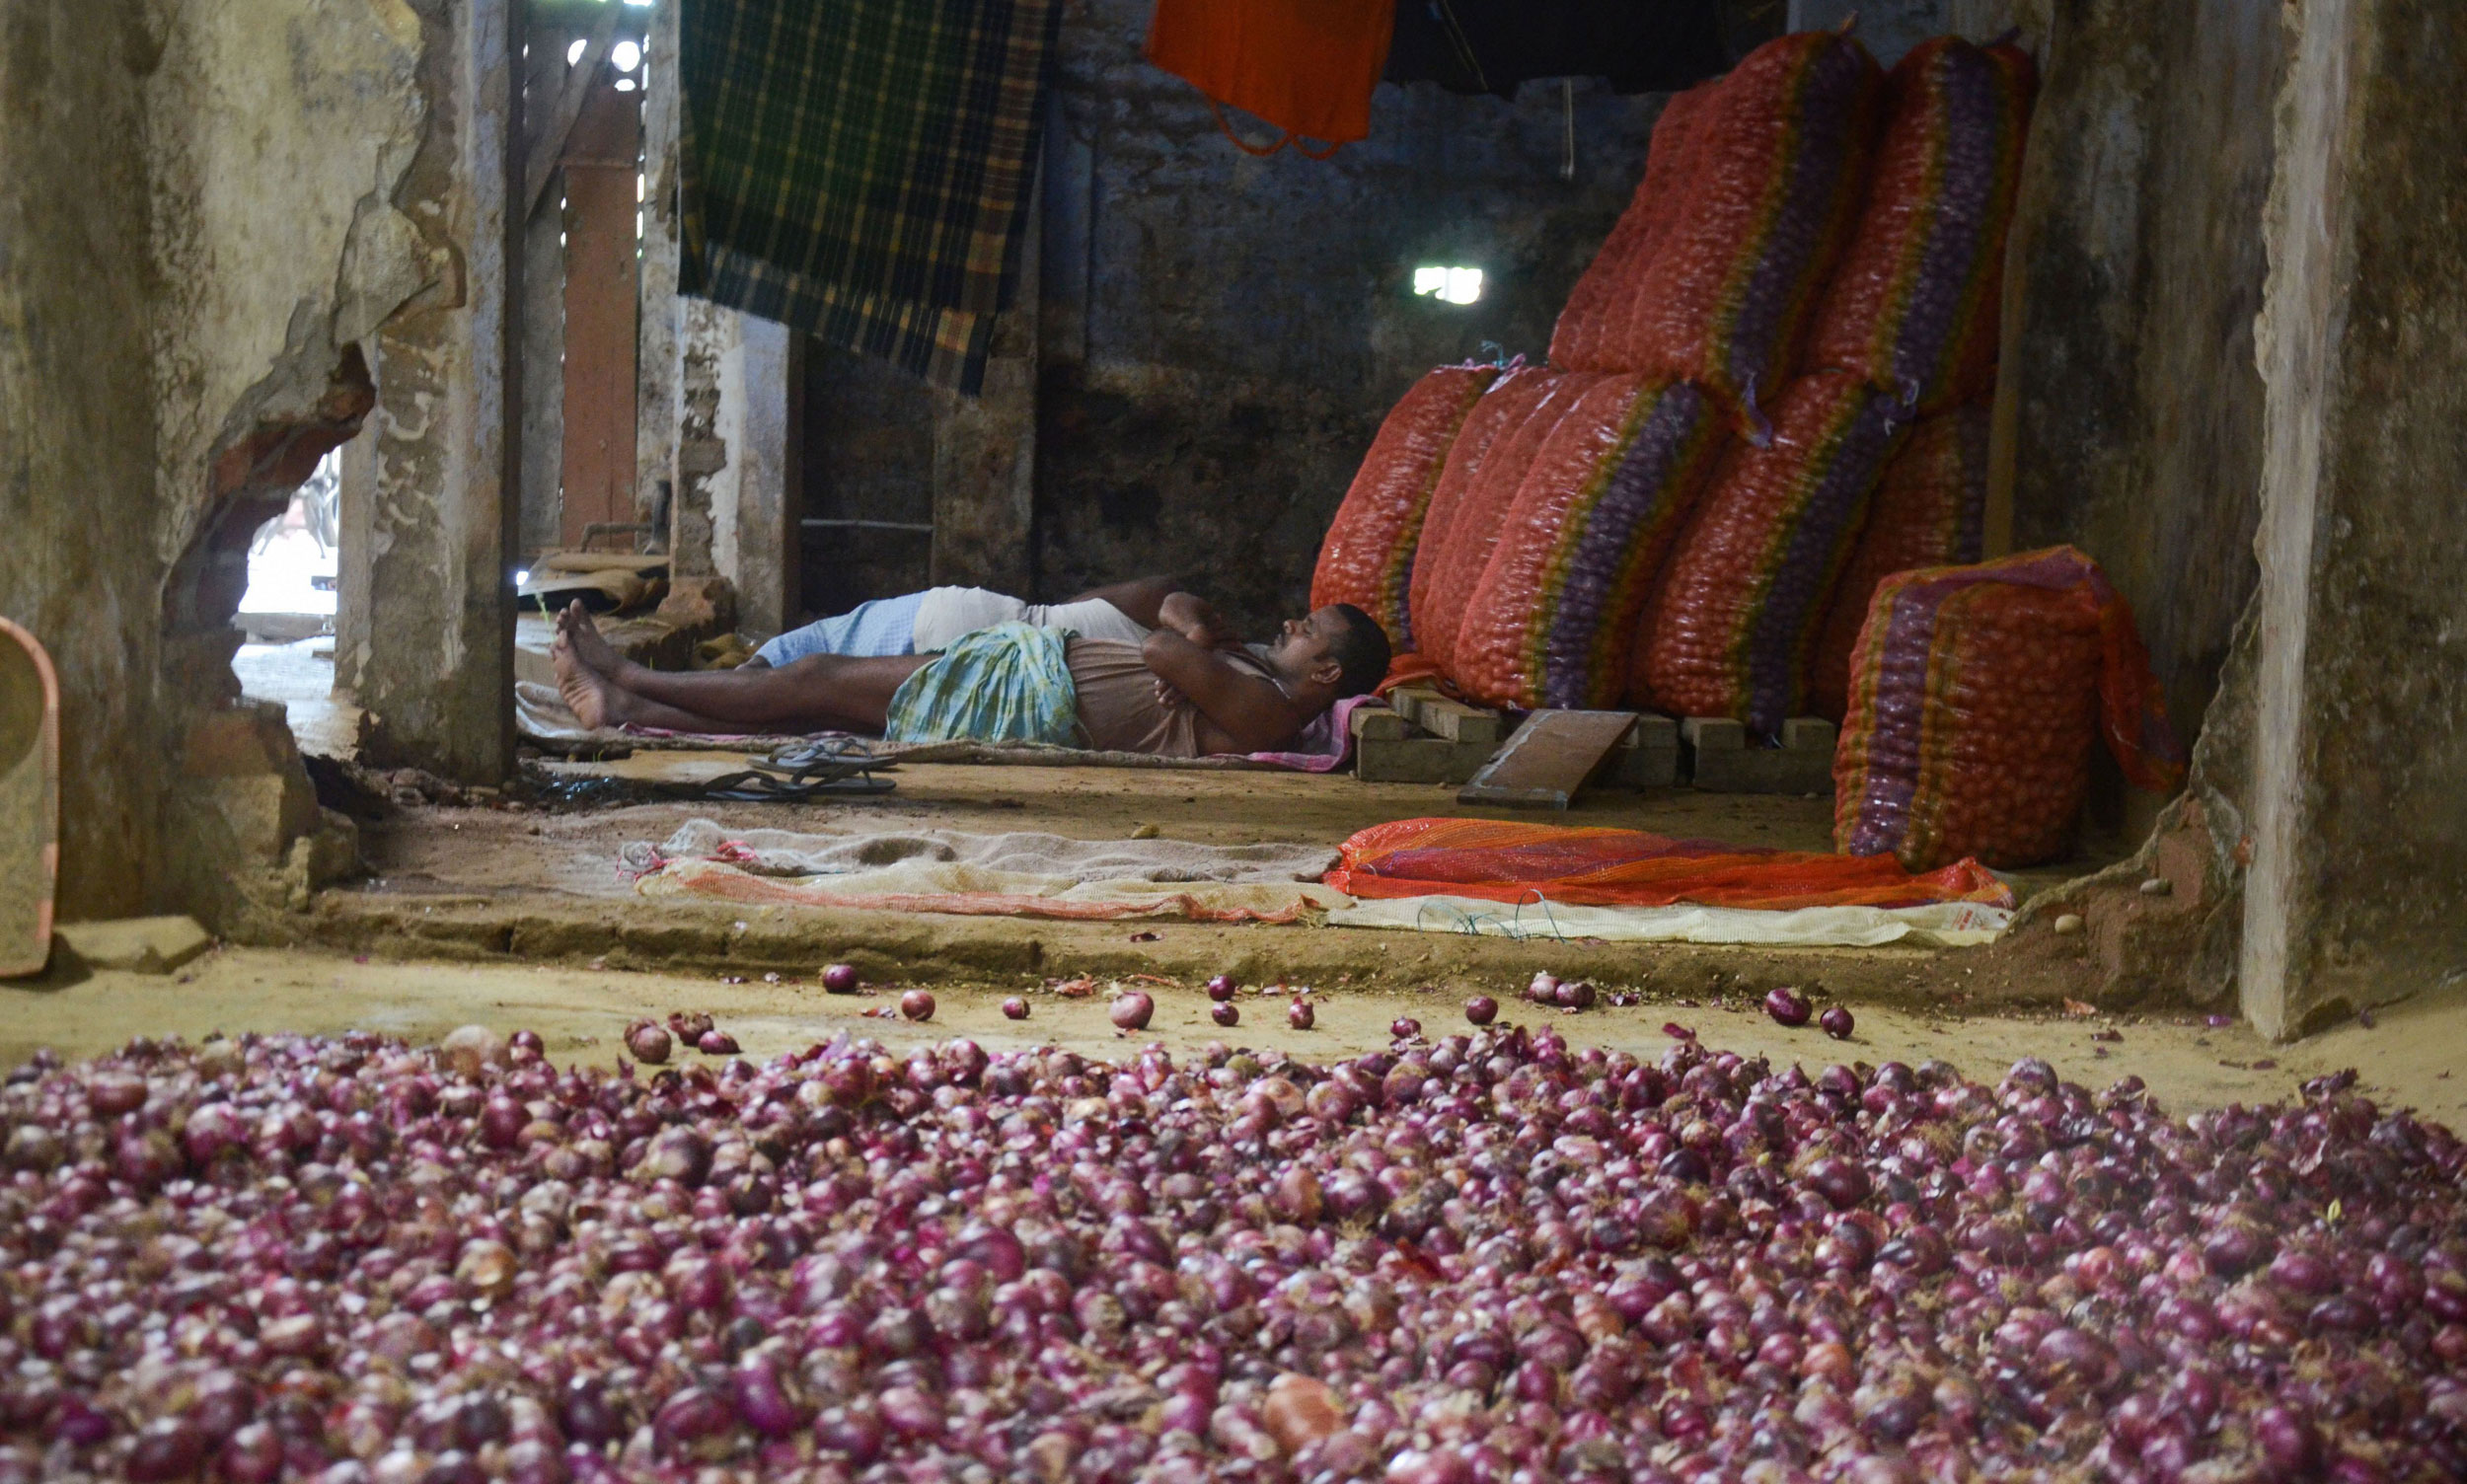 A labourer rests beside onion sacks at a market in Dibrugarh on September 28, 2019.